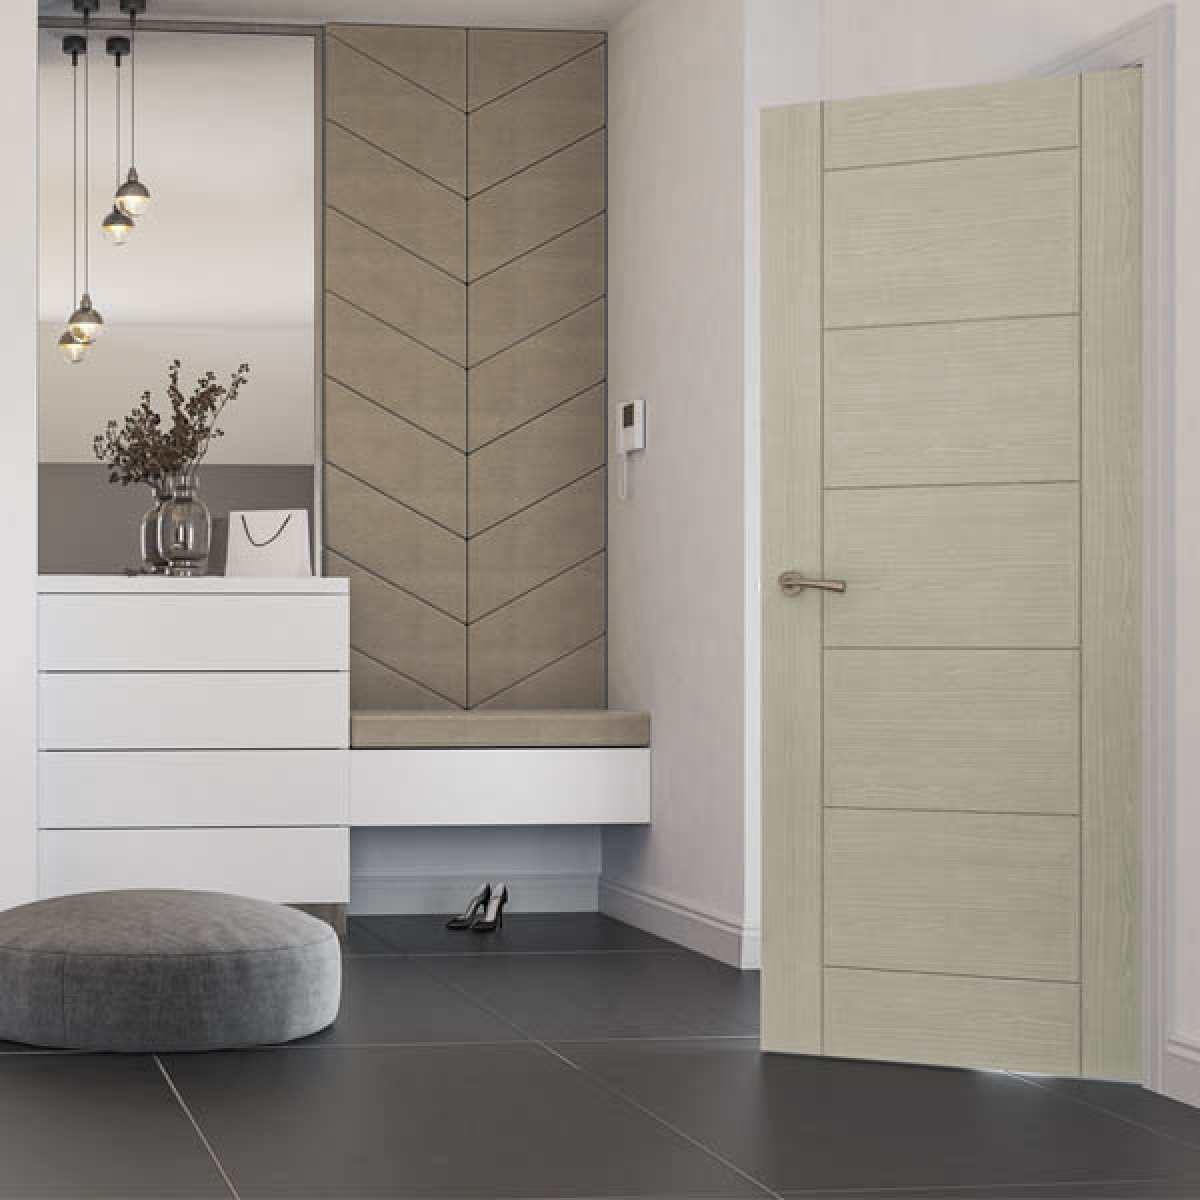 montreal light grey ash glazed lifestyle websters Image by Websters Timber